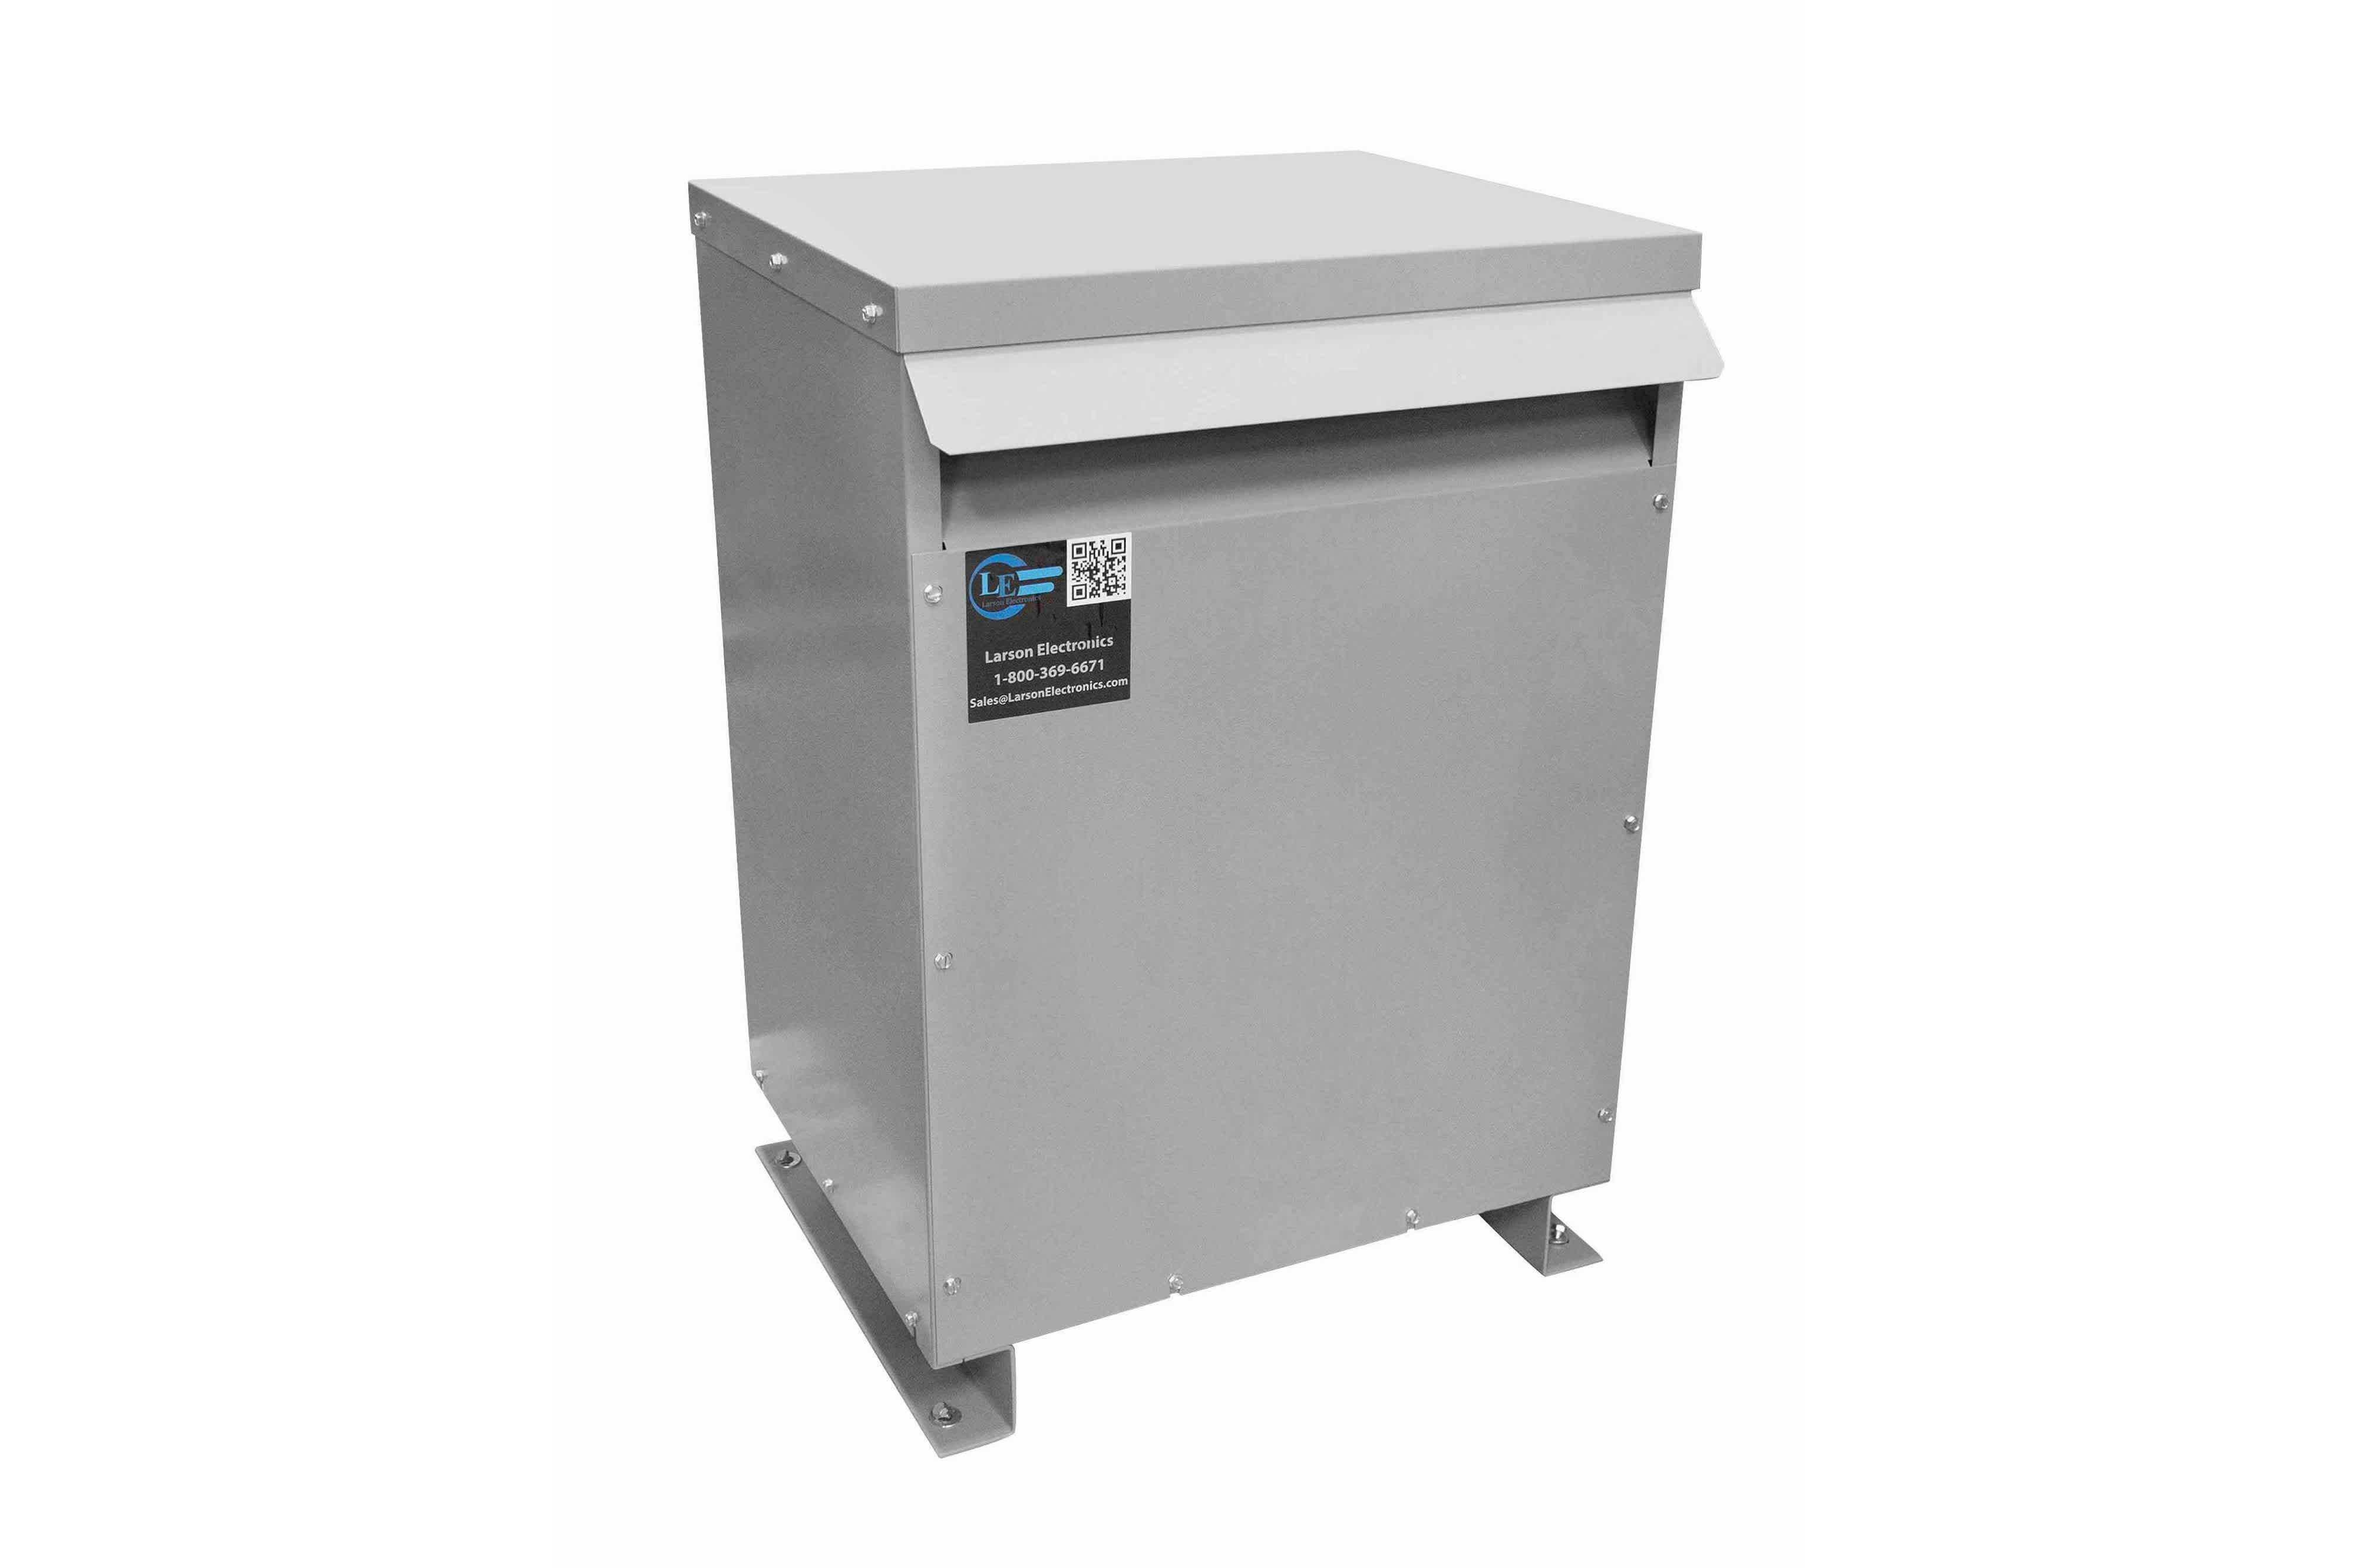 30 kVA 3PH Isolation Transformer, 575V Wye Primary, 380V Delta Secondary, N3R, Ventilated, 60 Hz